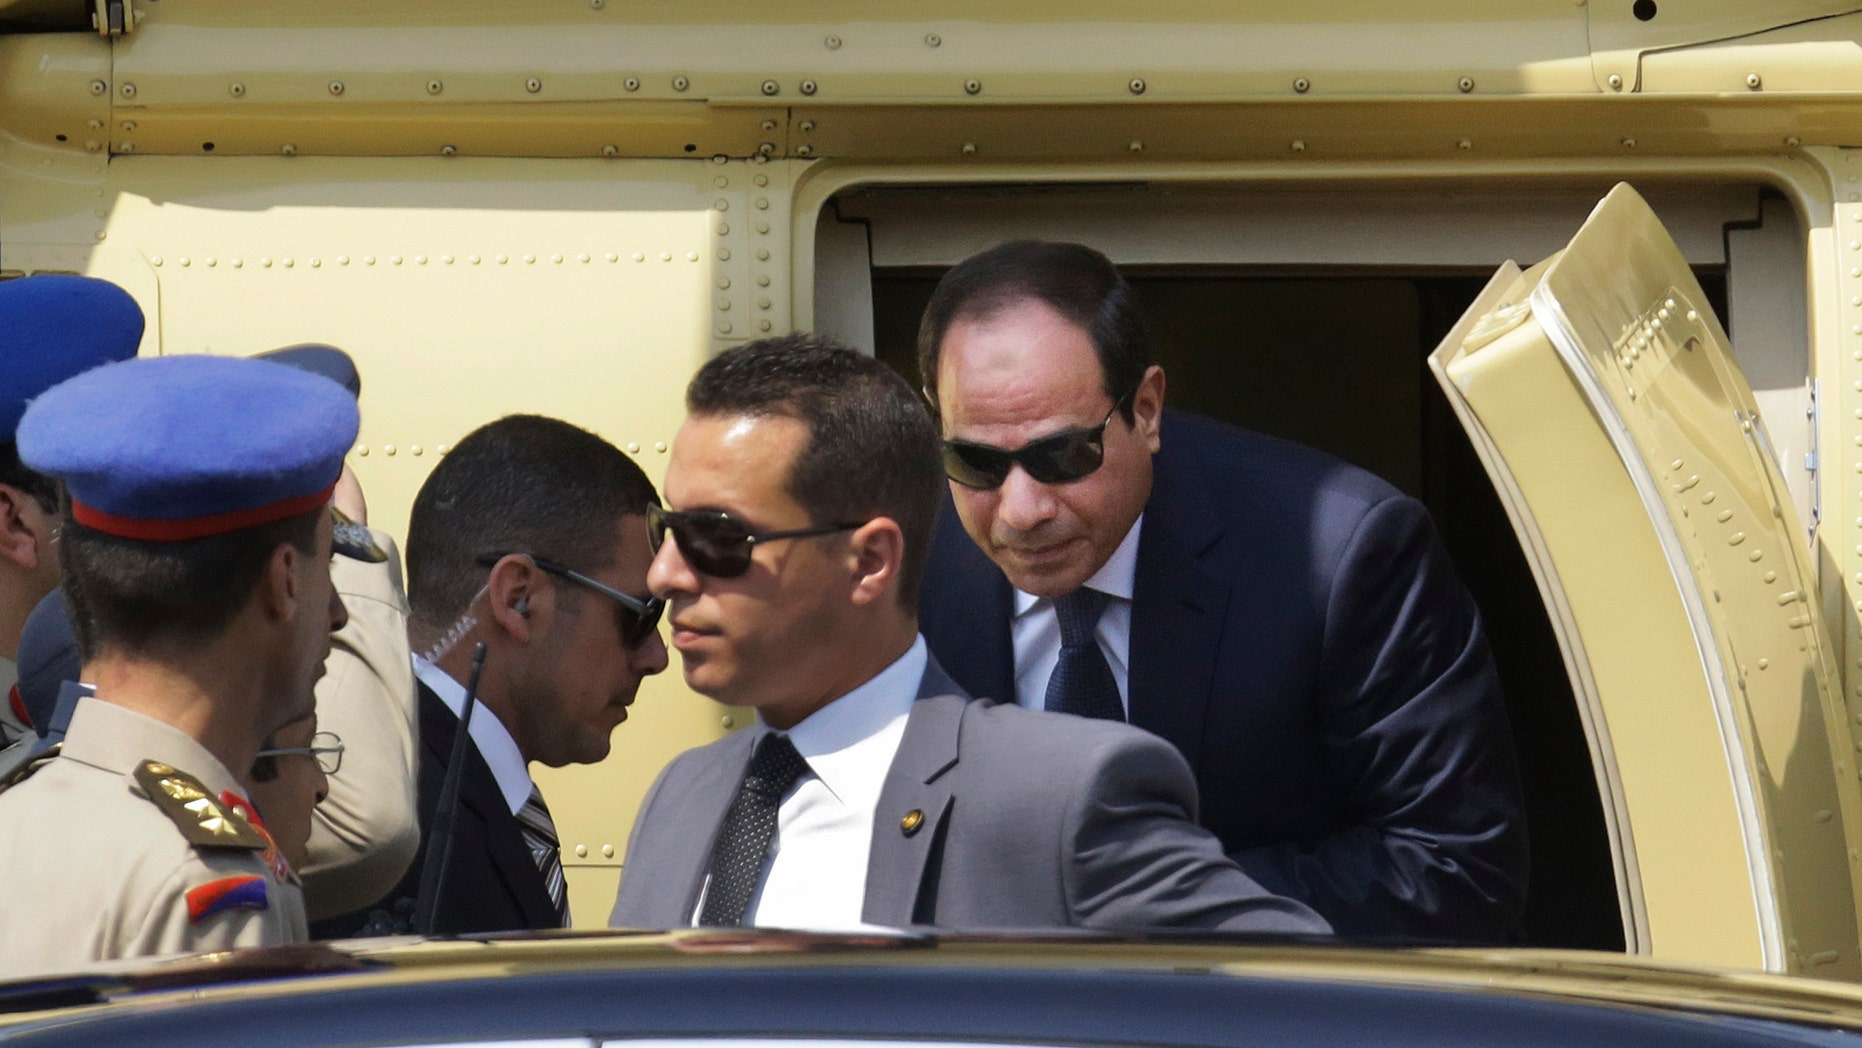 June 8, 2014 - Egyptian President-elect Abdel-Fattah el-Sissi gets out of a military helicopter as he arrives at the Supreme Constitutional Court, to take the oath of office in Cairo, Egypt.